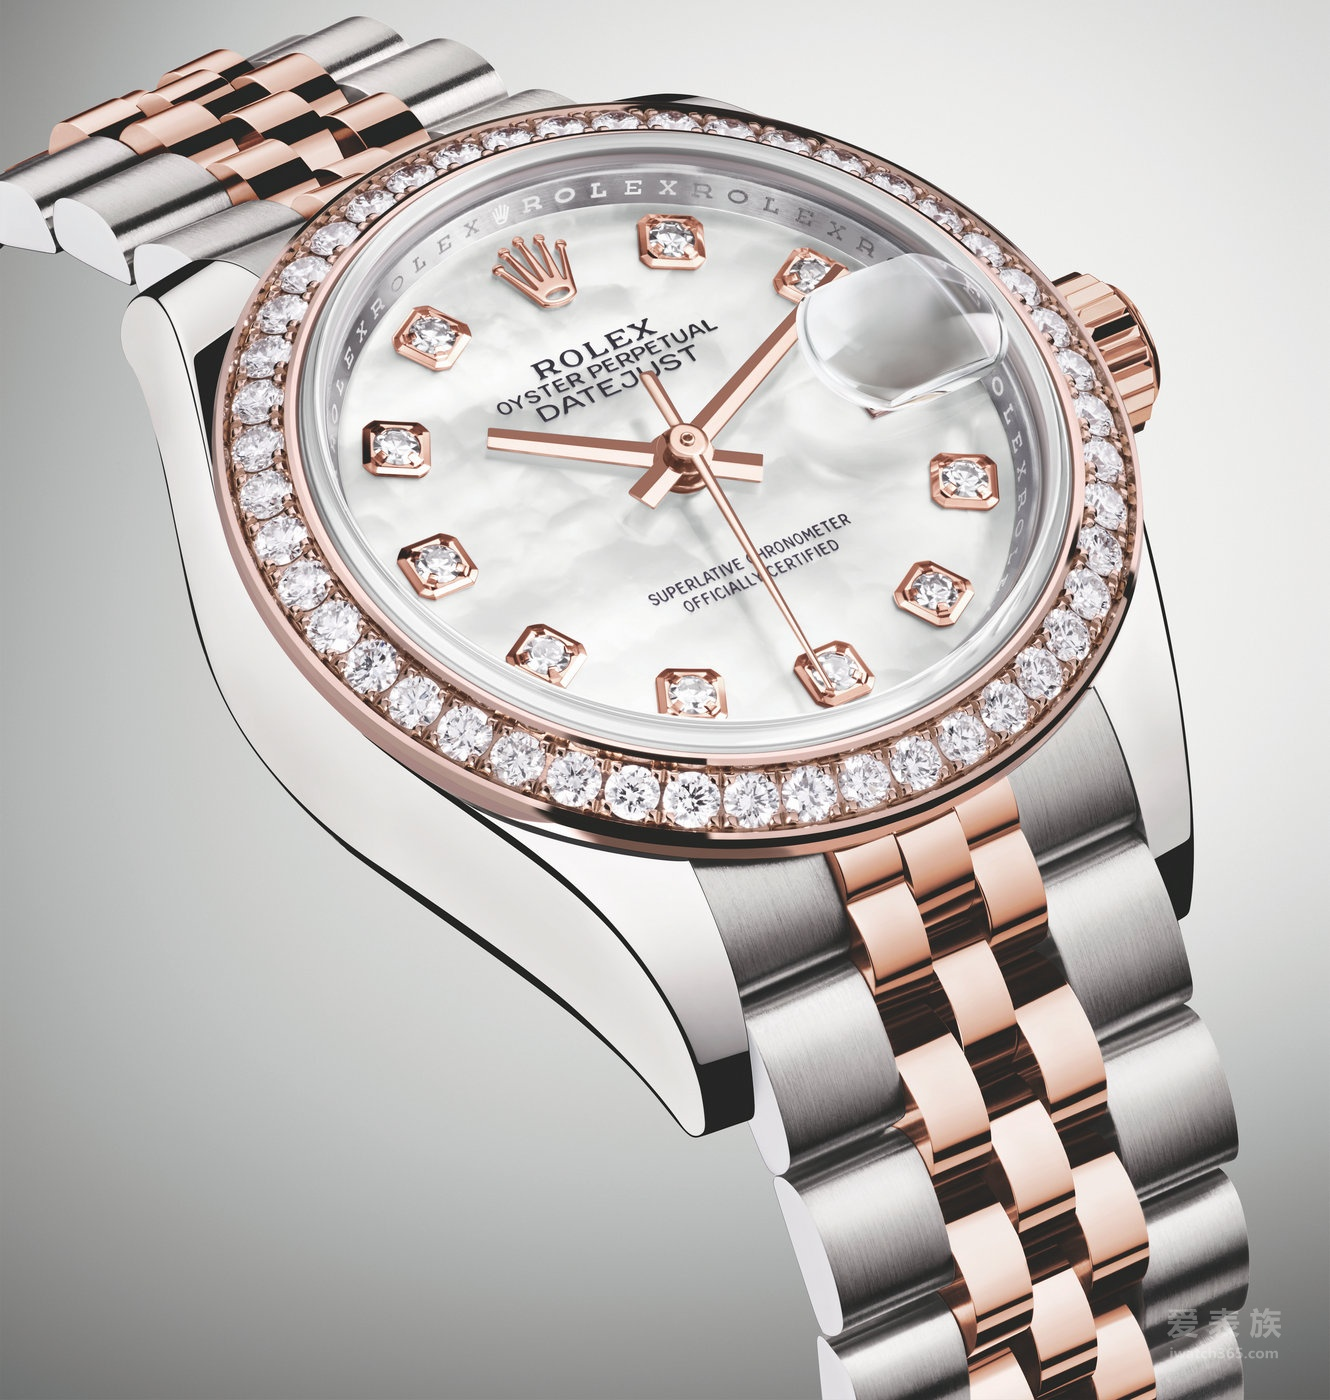 Replica Ladies Rolex Watches Uk